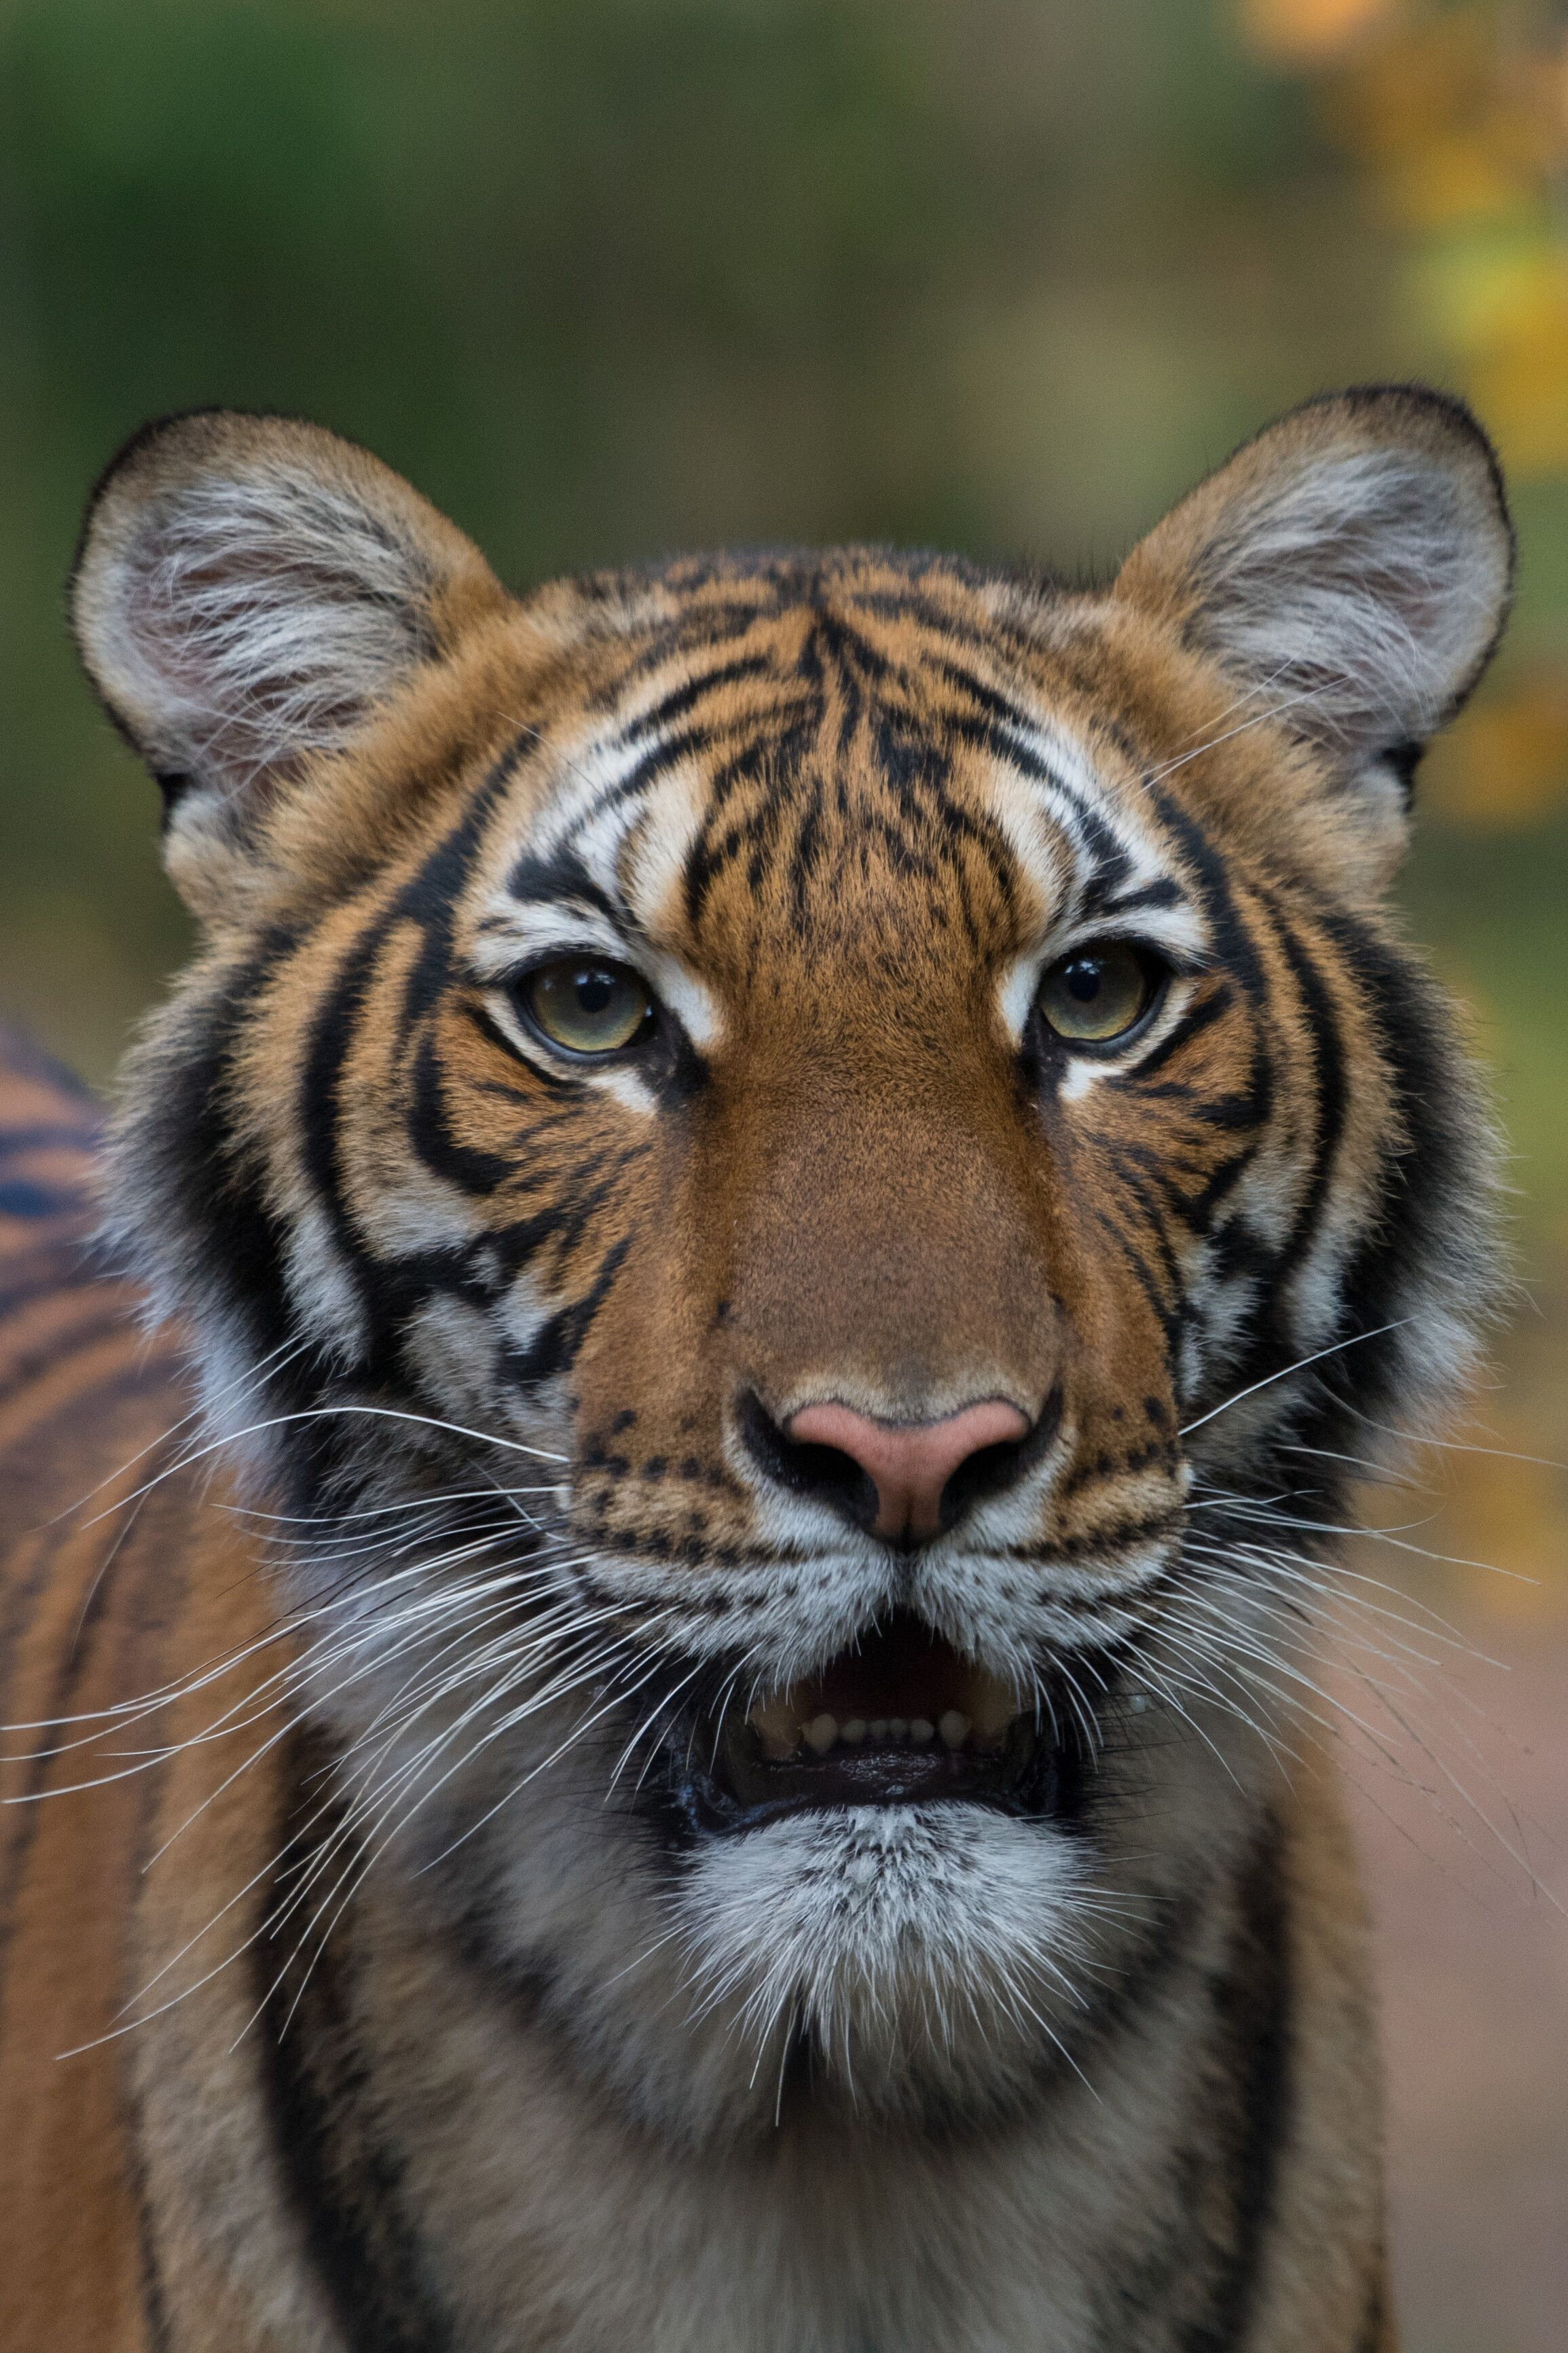 Nadia, a 4-year-old female Malayan tiger at the Bronx Zoo, has tested positive for coronavirus.